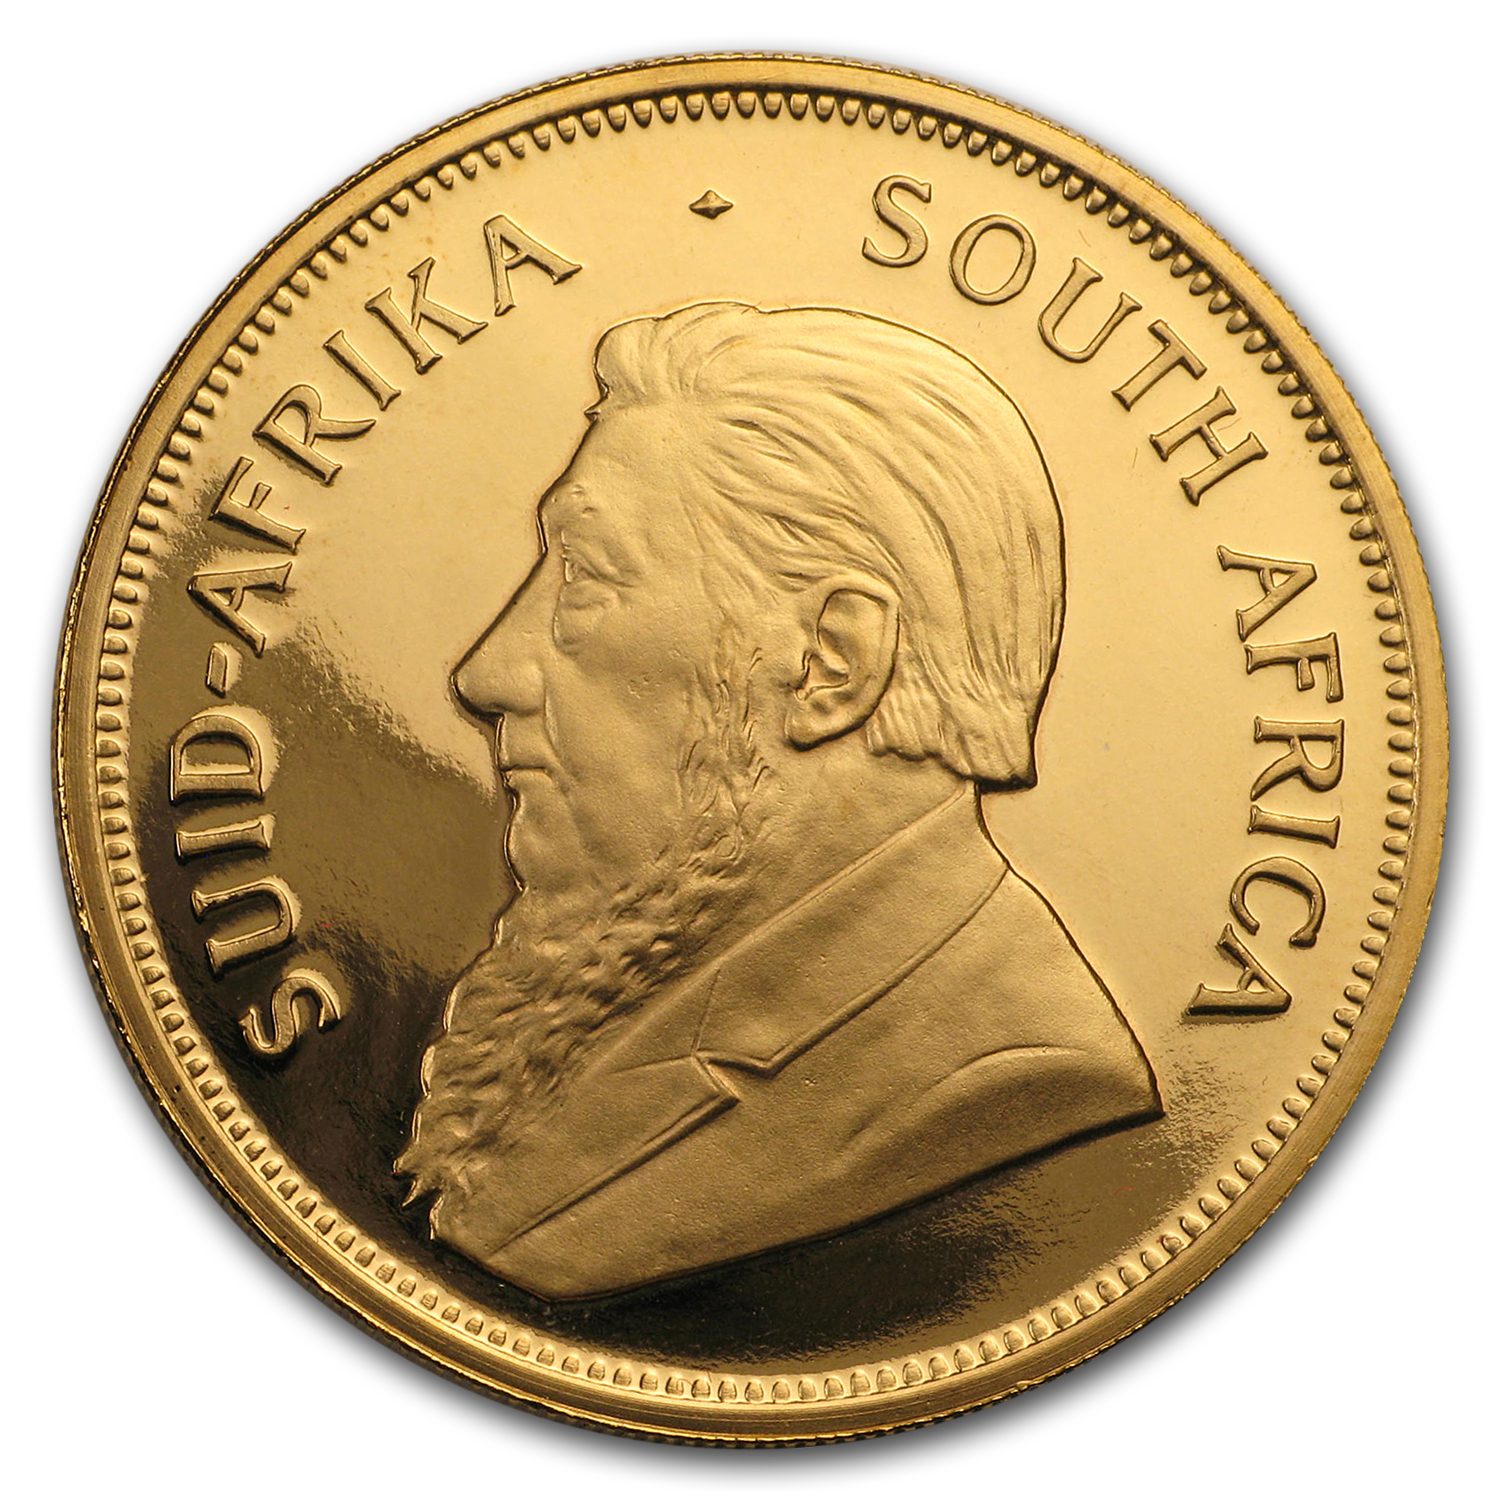 1987 South Africa 1 oz Proof Gold Krugerrand